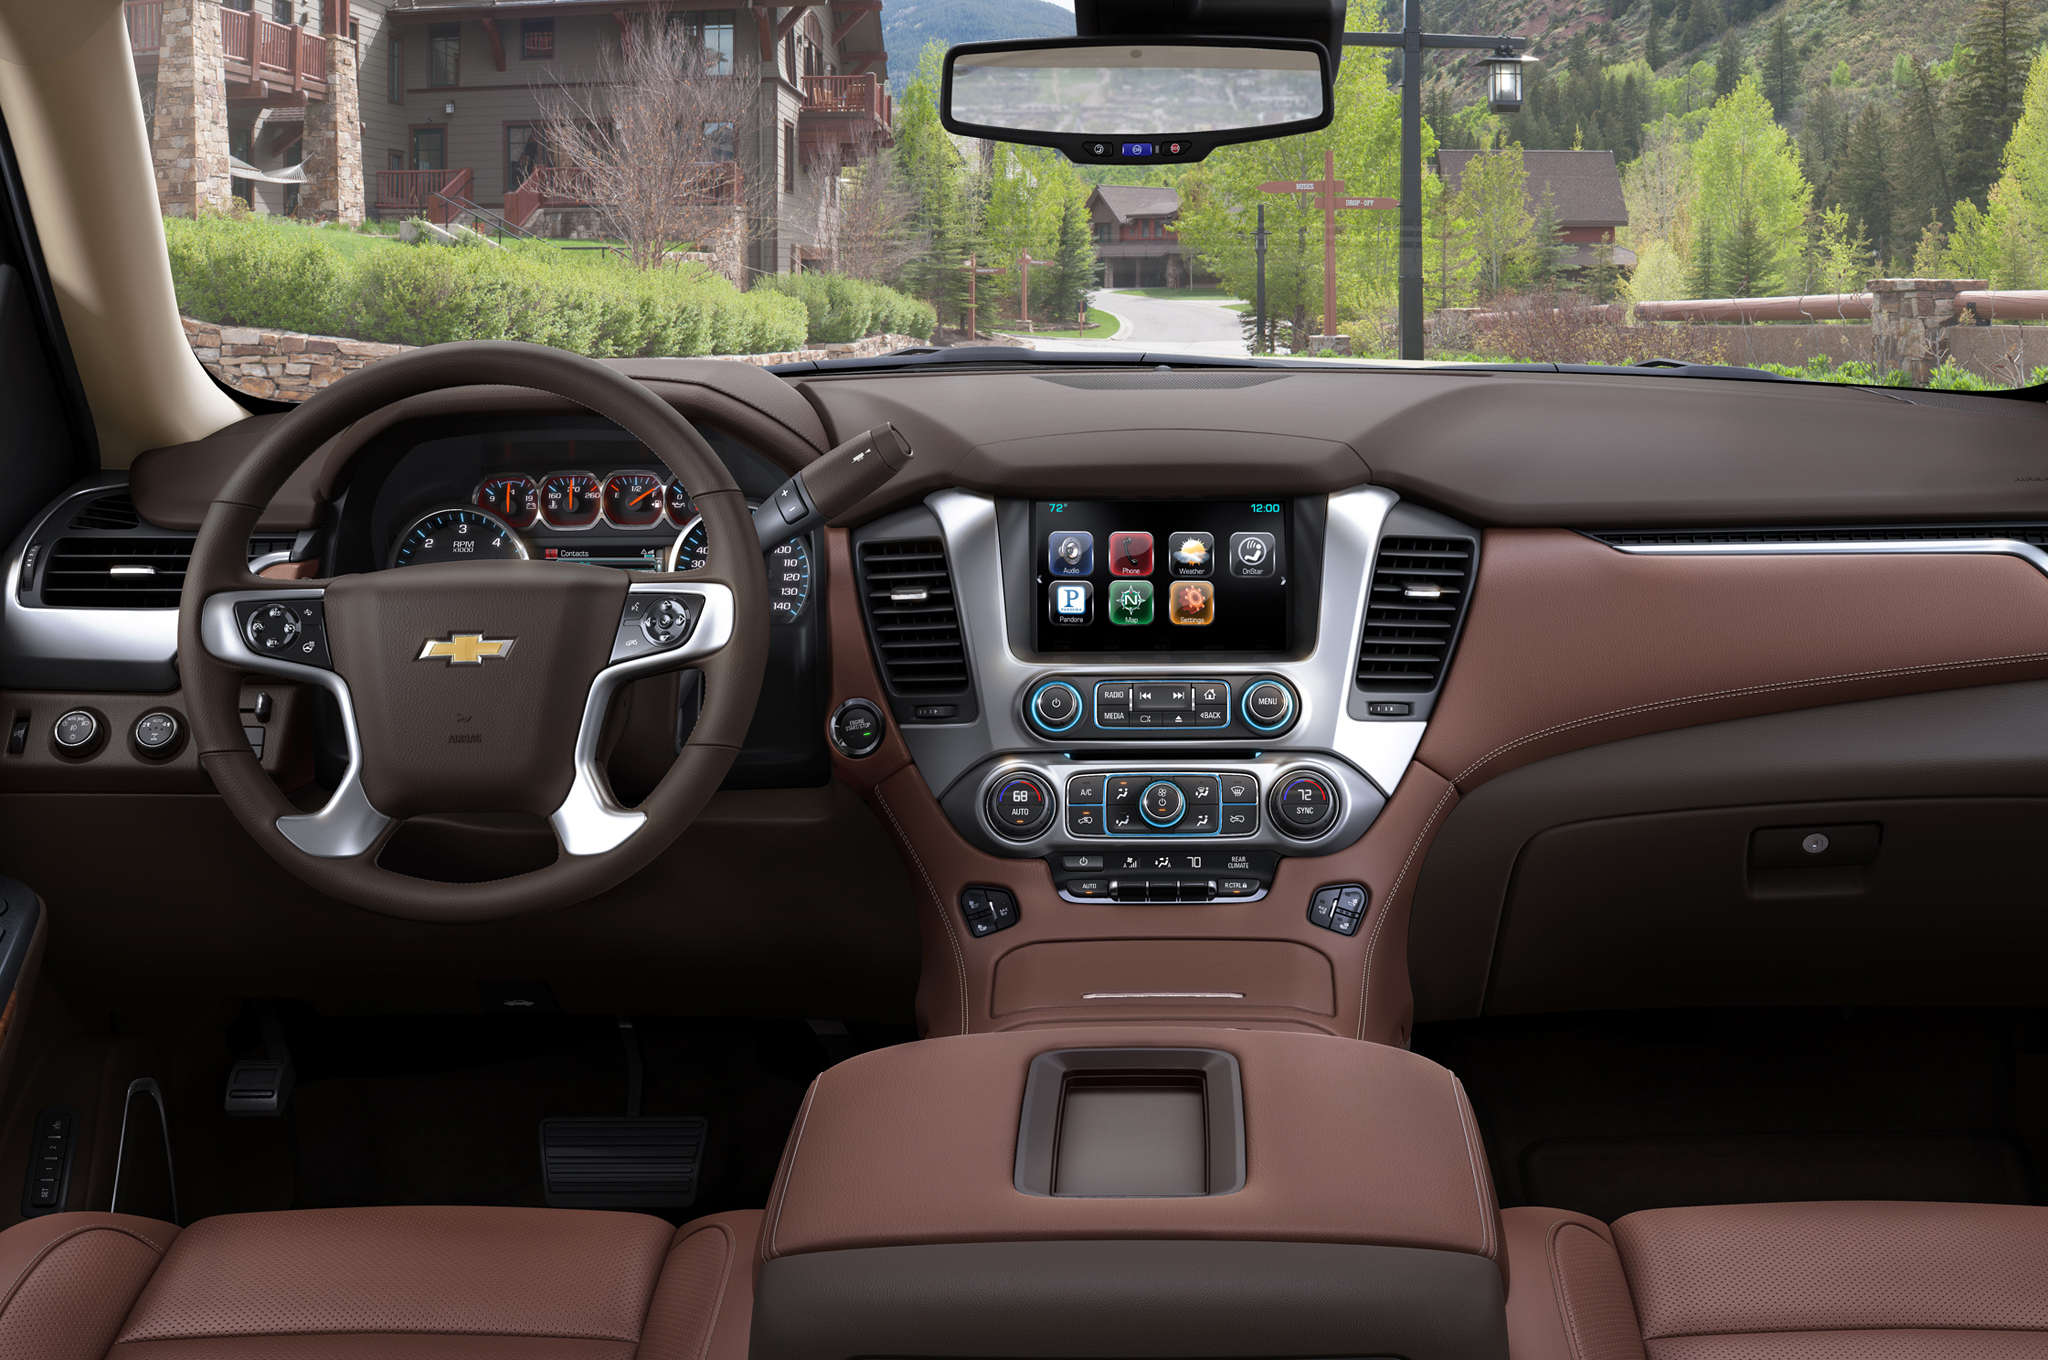 2015 Chevrolet Suburban Cockpit And Dashboard (Photo 28 of 33)